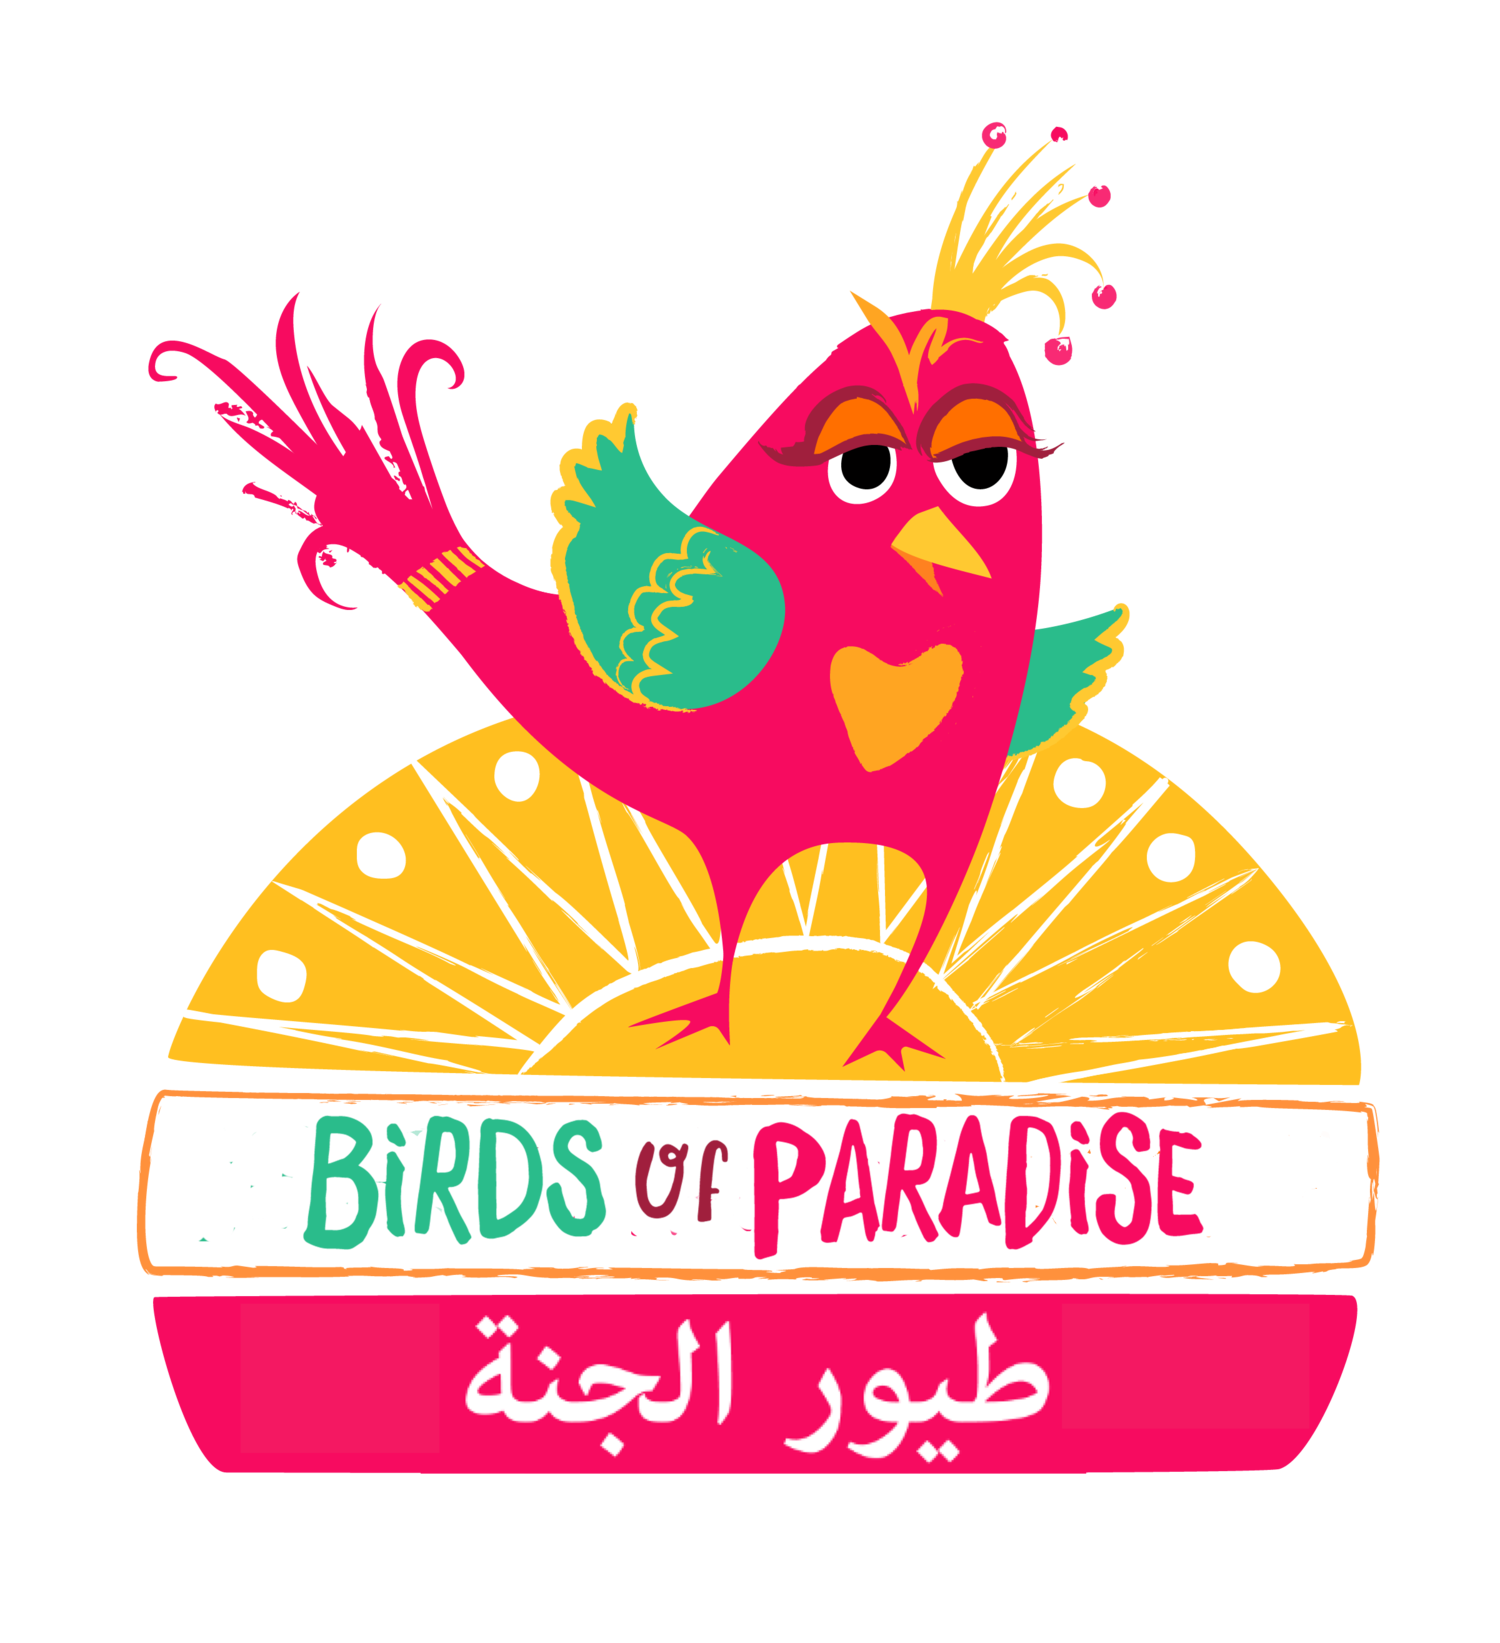 The Birds of Paradise, Dahab